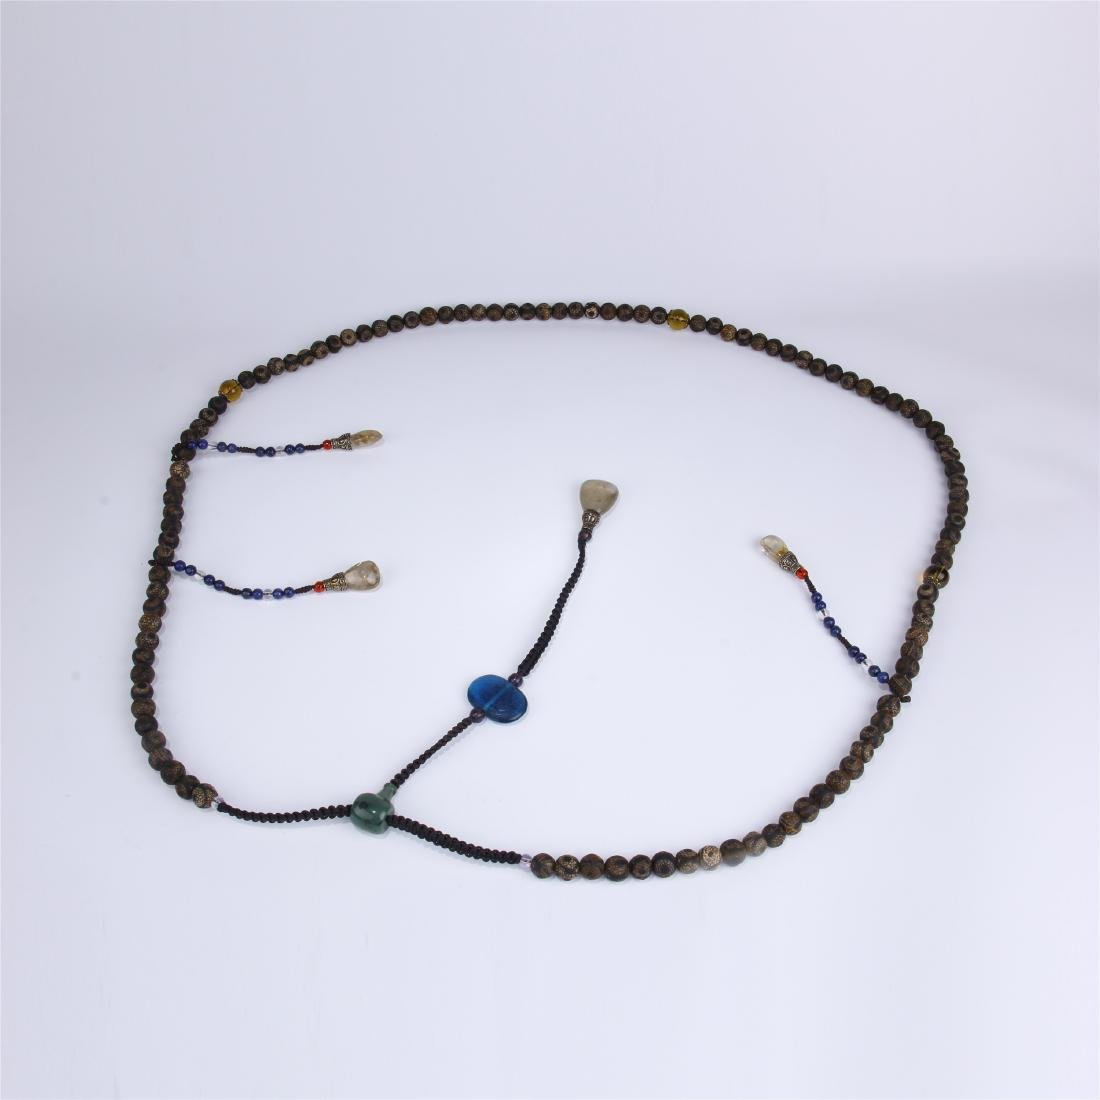 CHINESE AGATE BEADS CHAOZHU COURT NECKLACE